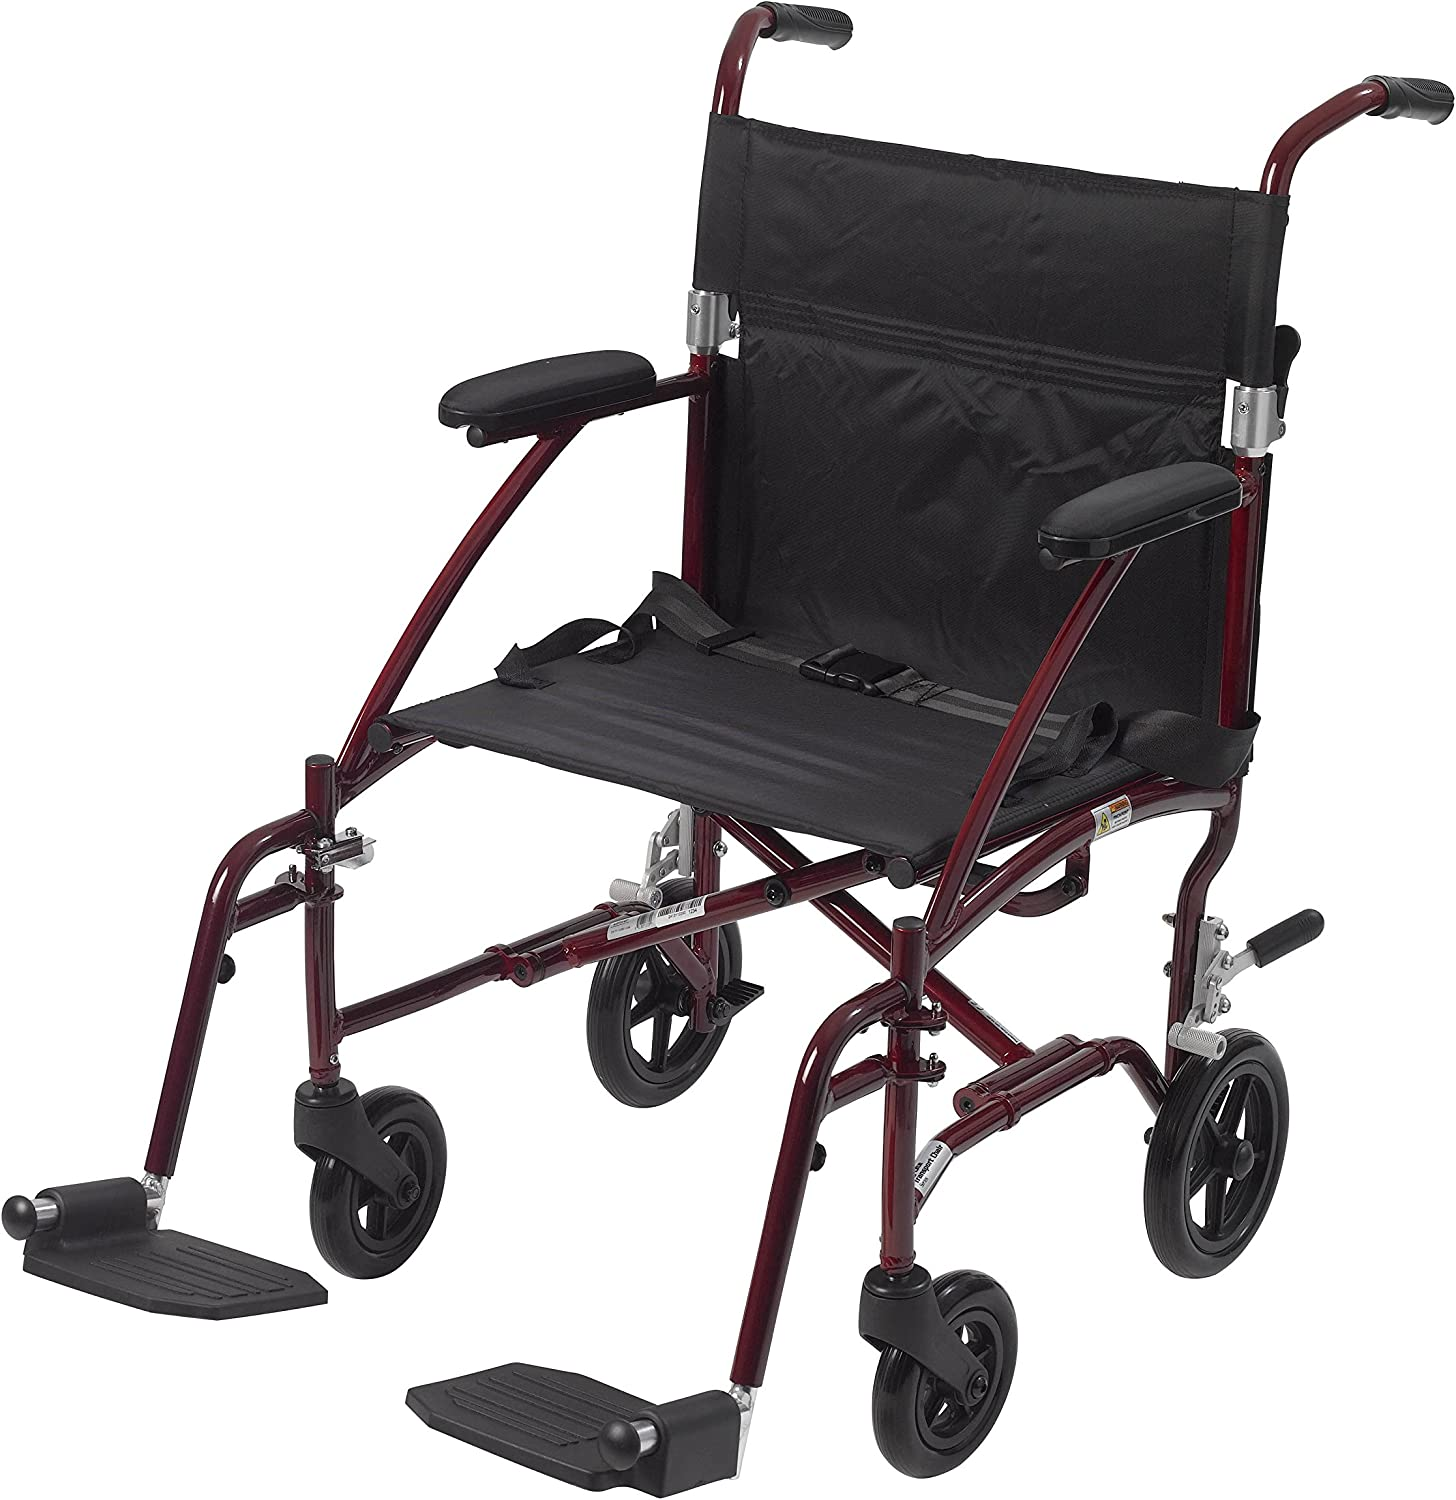 "B002VWK2FS Drive Medical Fly Lite Ultra Lightweight Transport Wheelchair, 19"", Red Frame 81chQ9YJJOL"